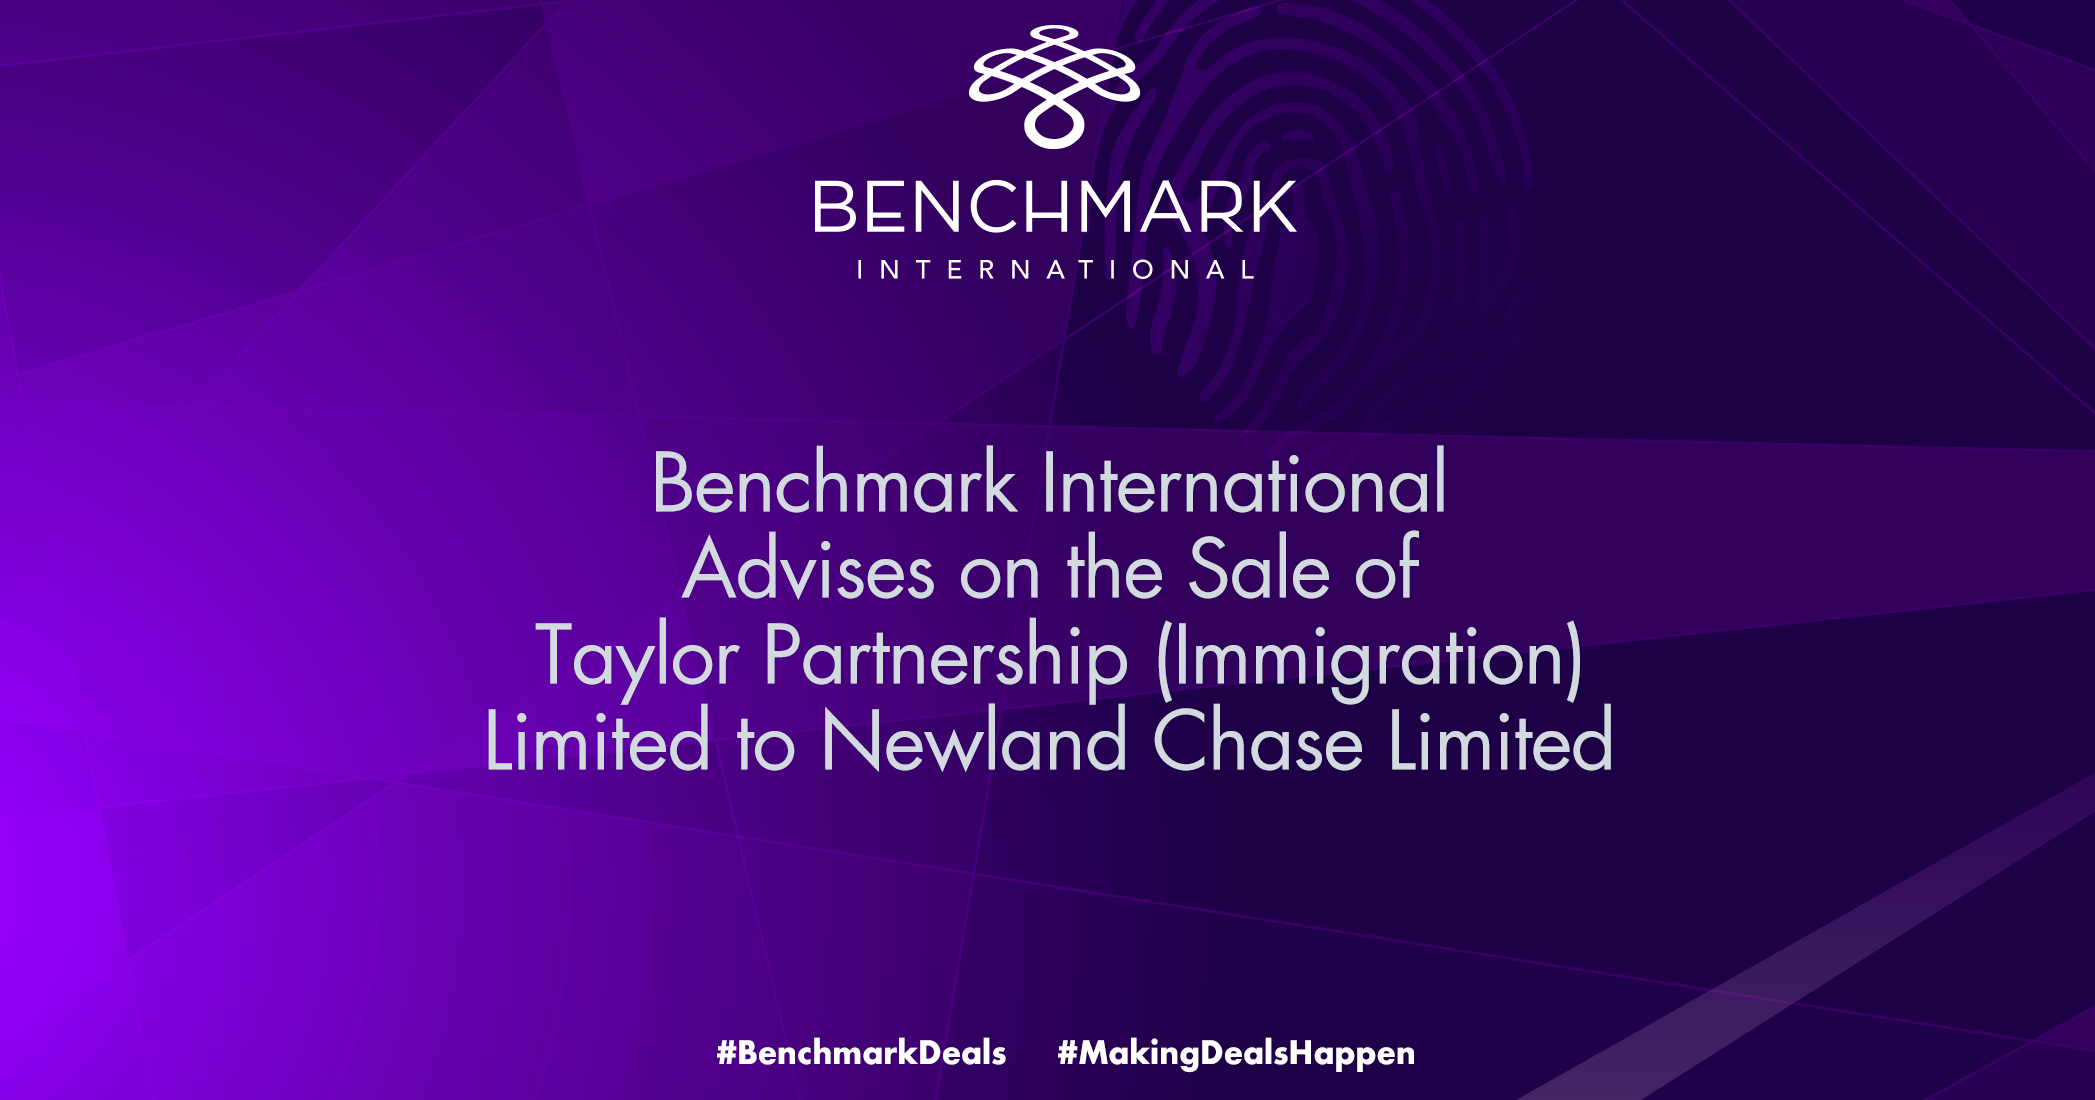 Benchmark International has Successfully Facilitated the Sale of Taylor Partnership (Immigration) Limited to Newland Chase Limited